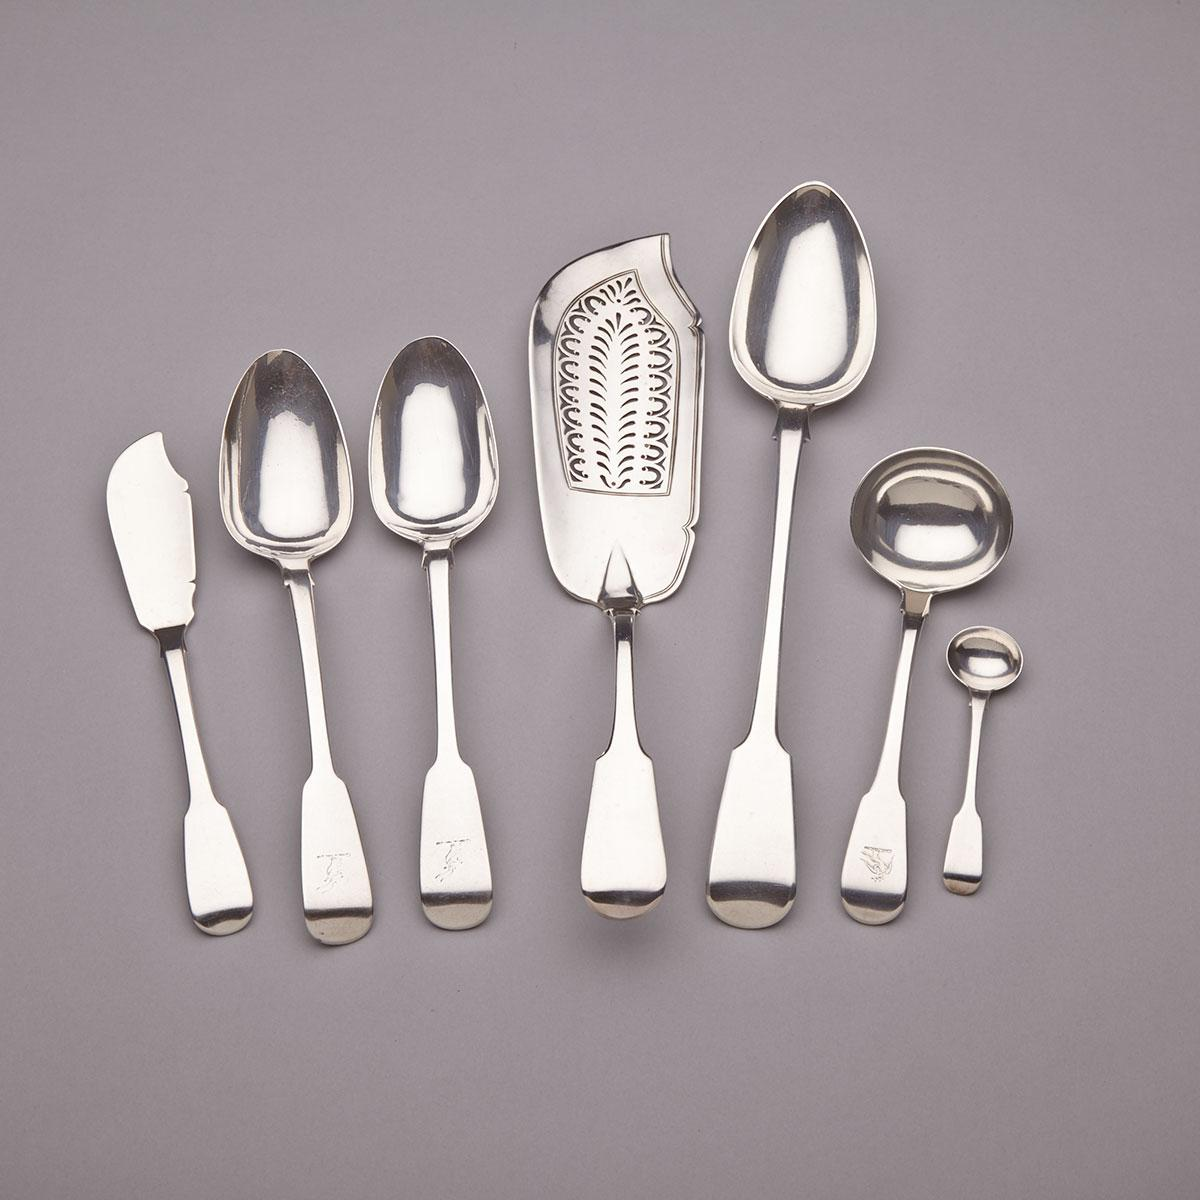 Georgian Silver Fiddle Pattern Fish Slice, Basting Spoon, Gravy Ladle, Butter Knife, Salt Spoon and Pair of Table Spoons, various makers, London and Dublin, c.1818-37